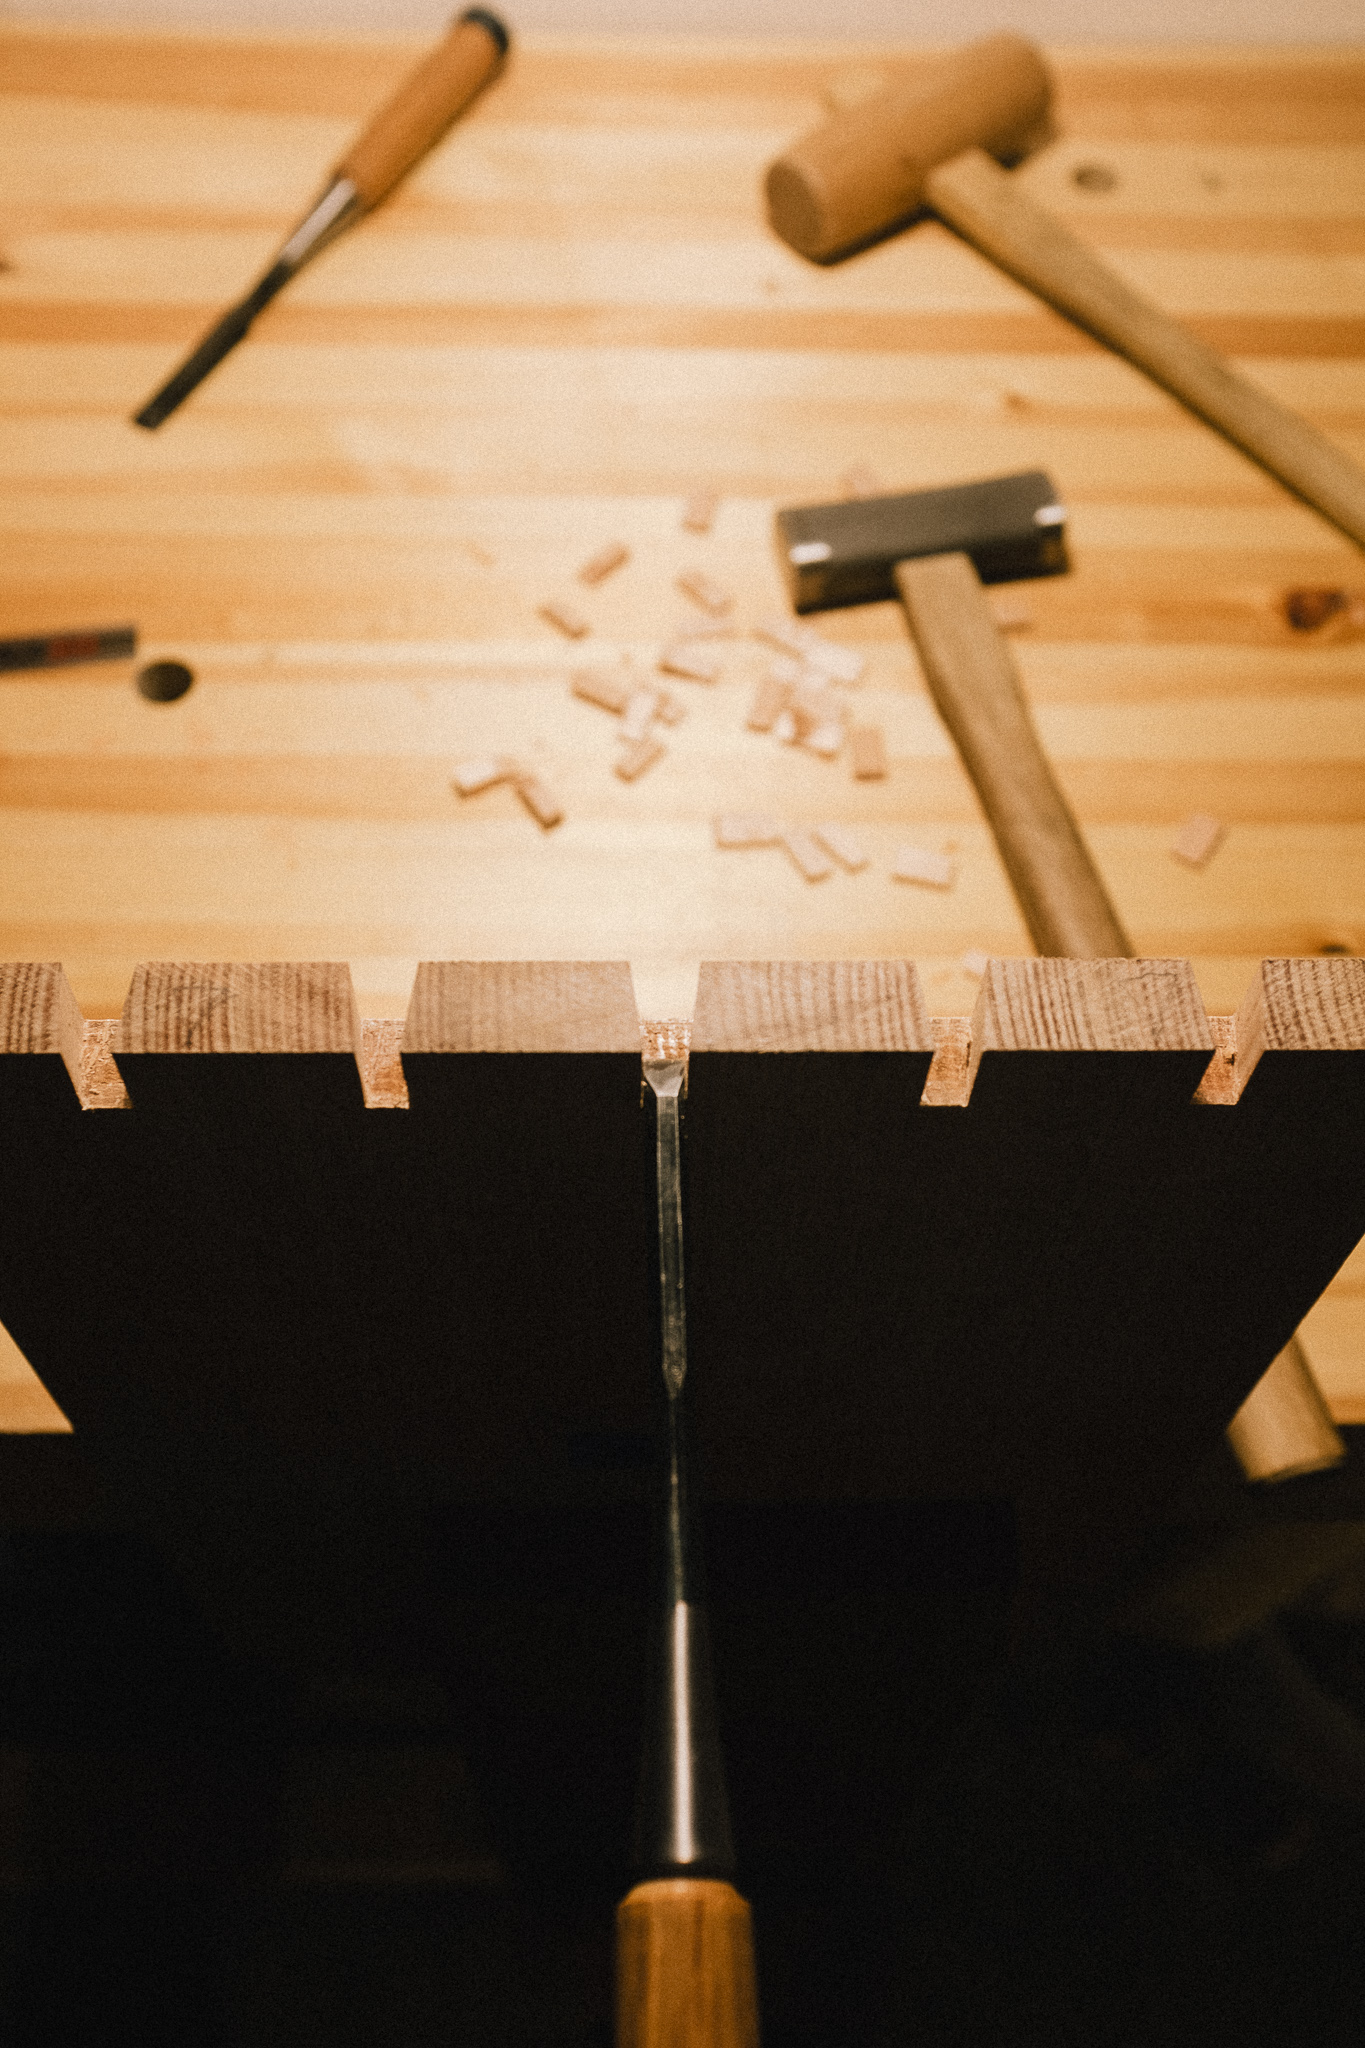 Cleaning dovetails